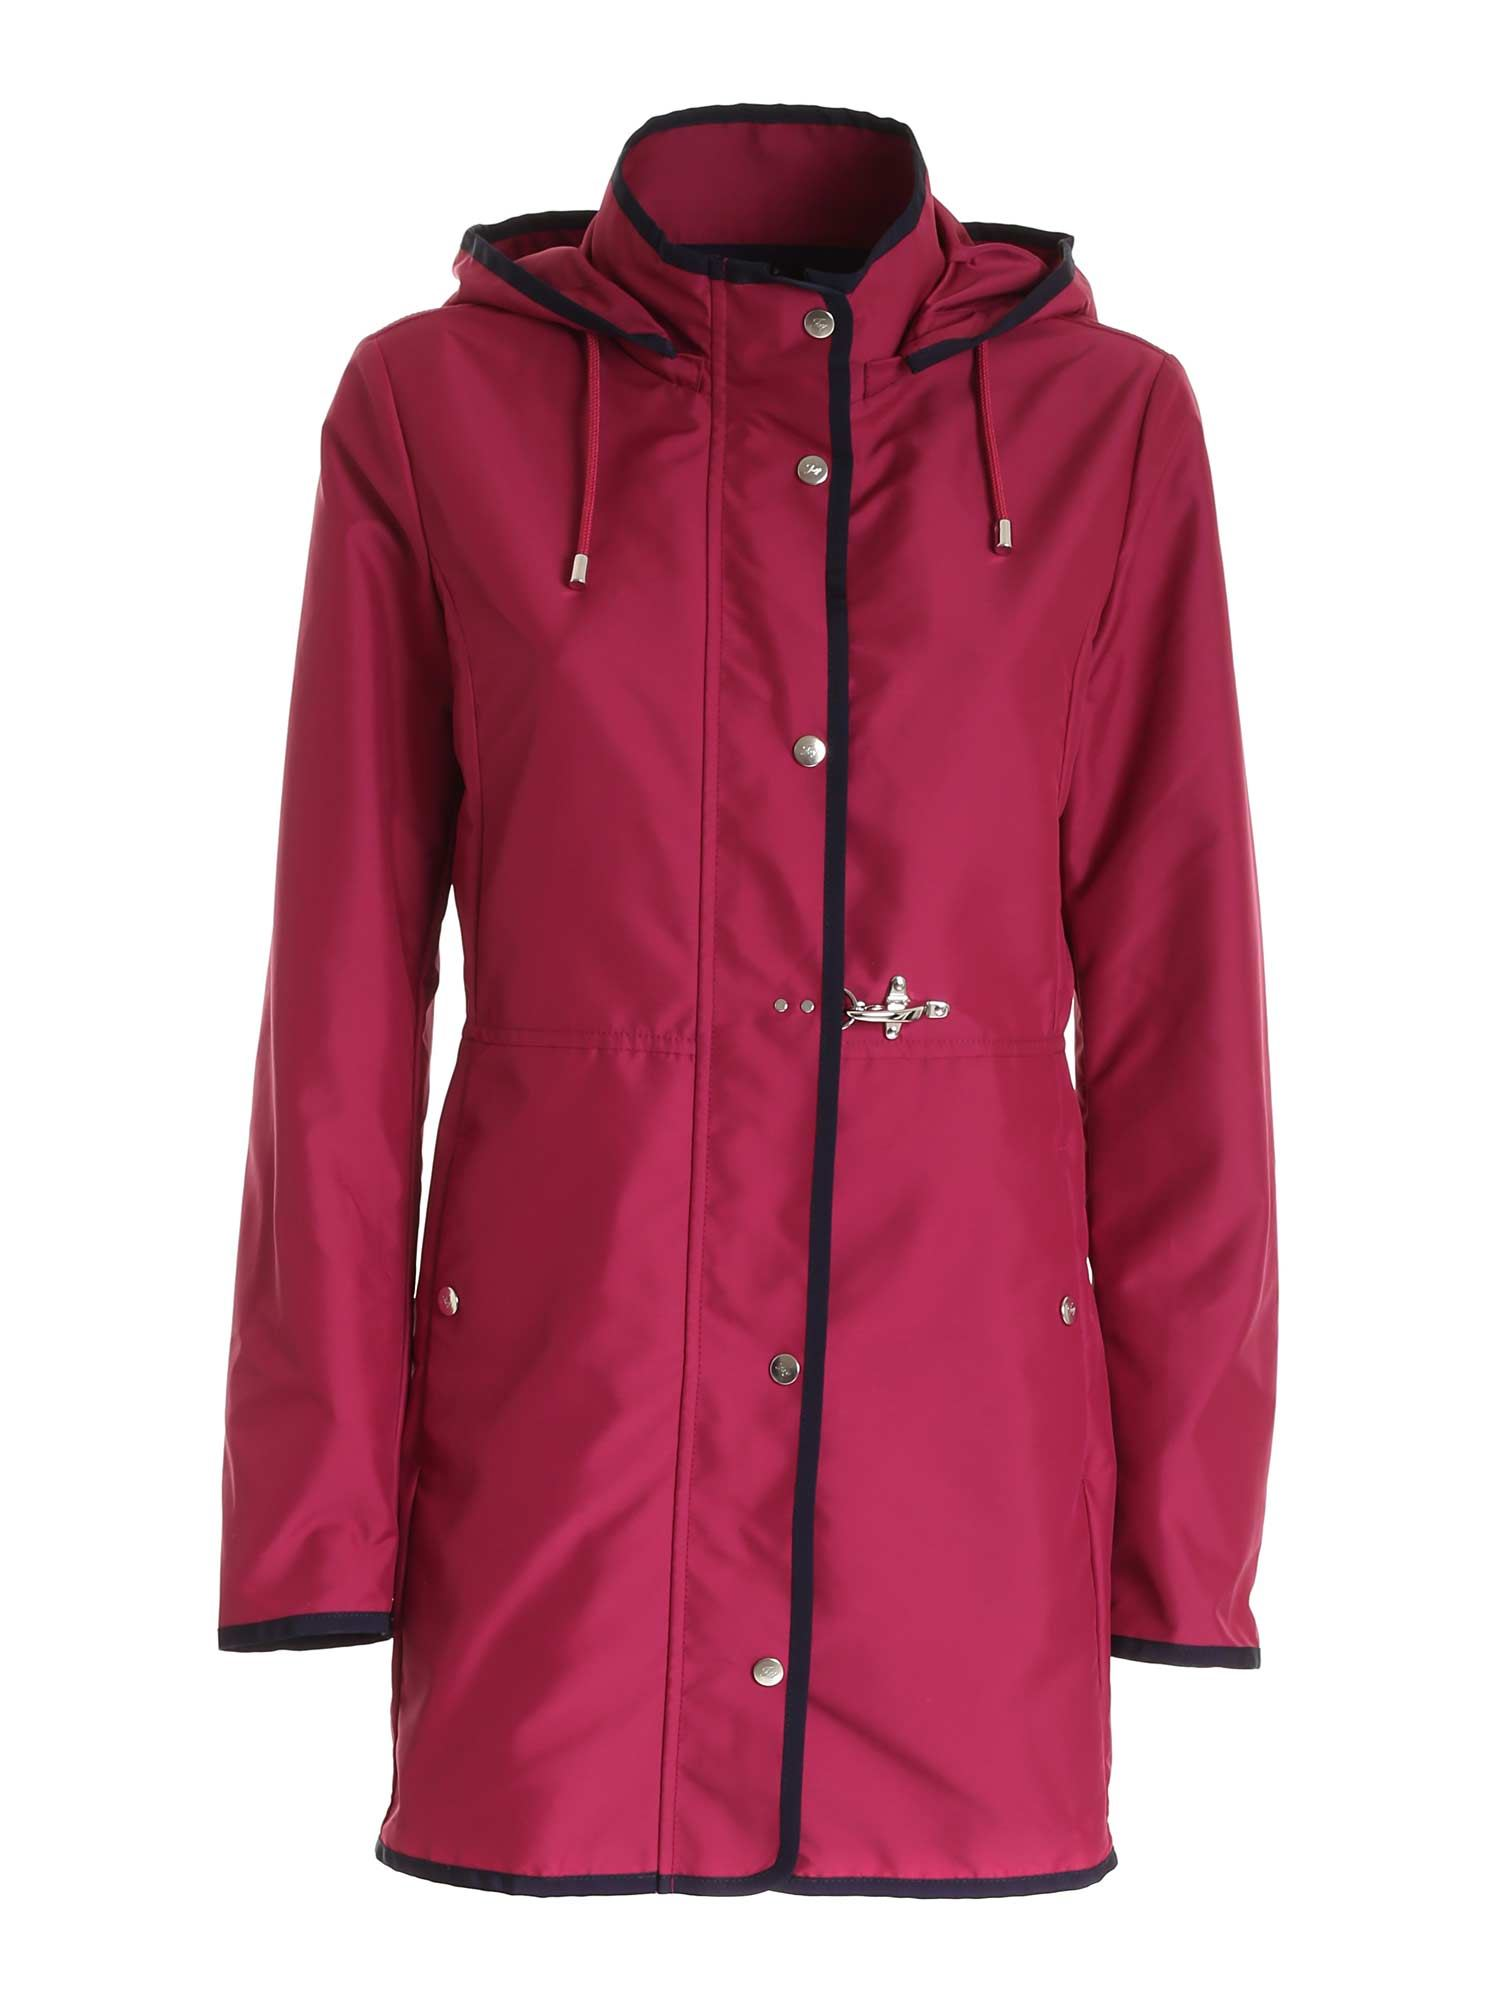 Fay VIRGINIA LAZY RAINCOAT IN FUCHSIA